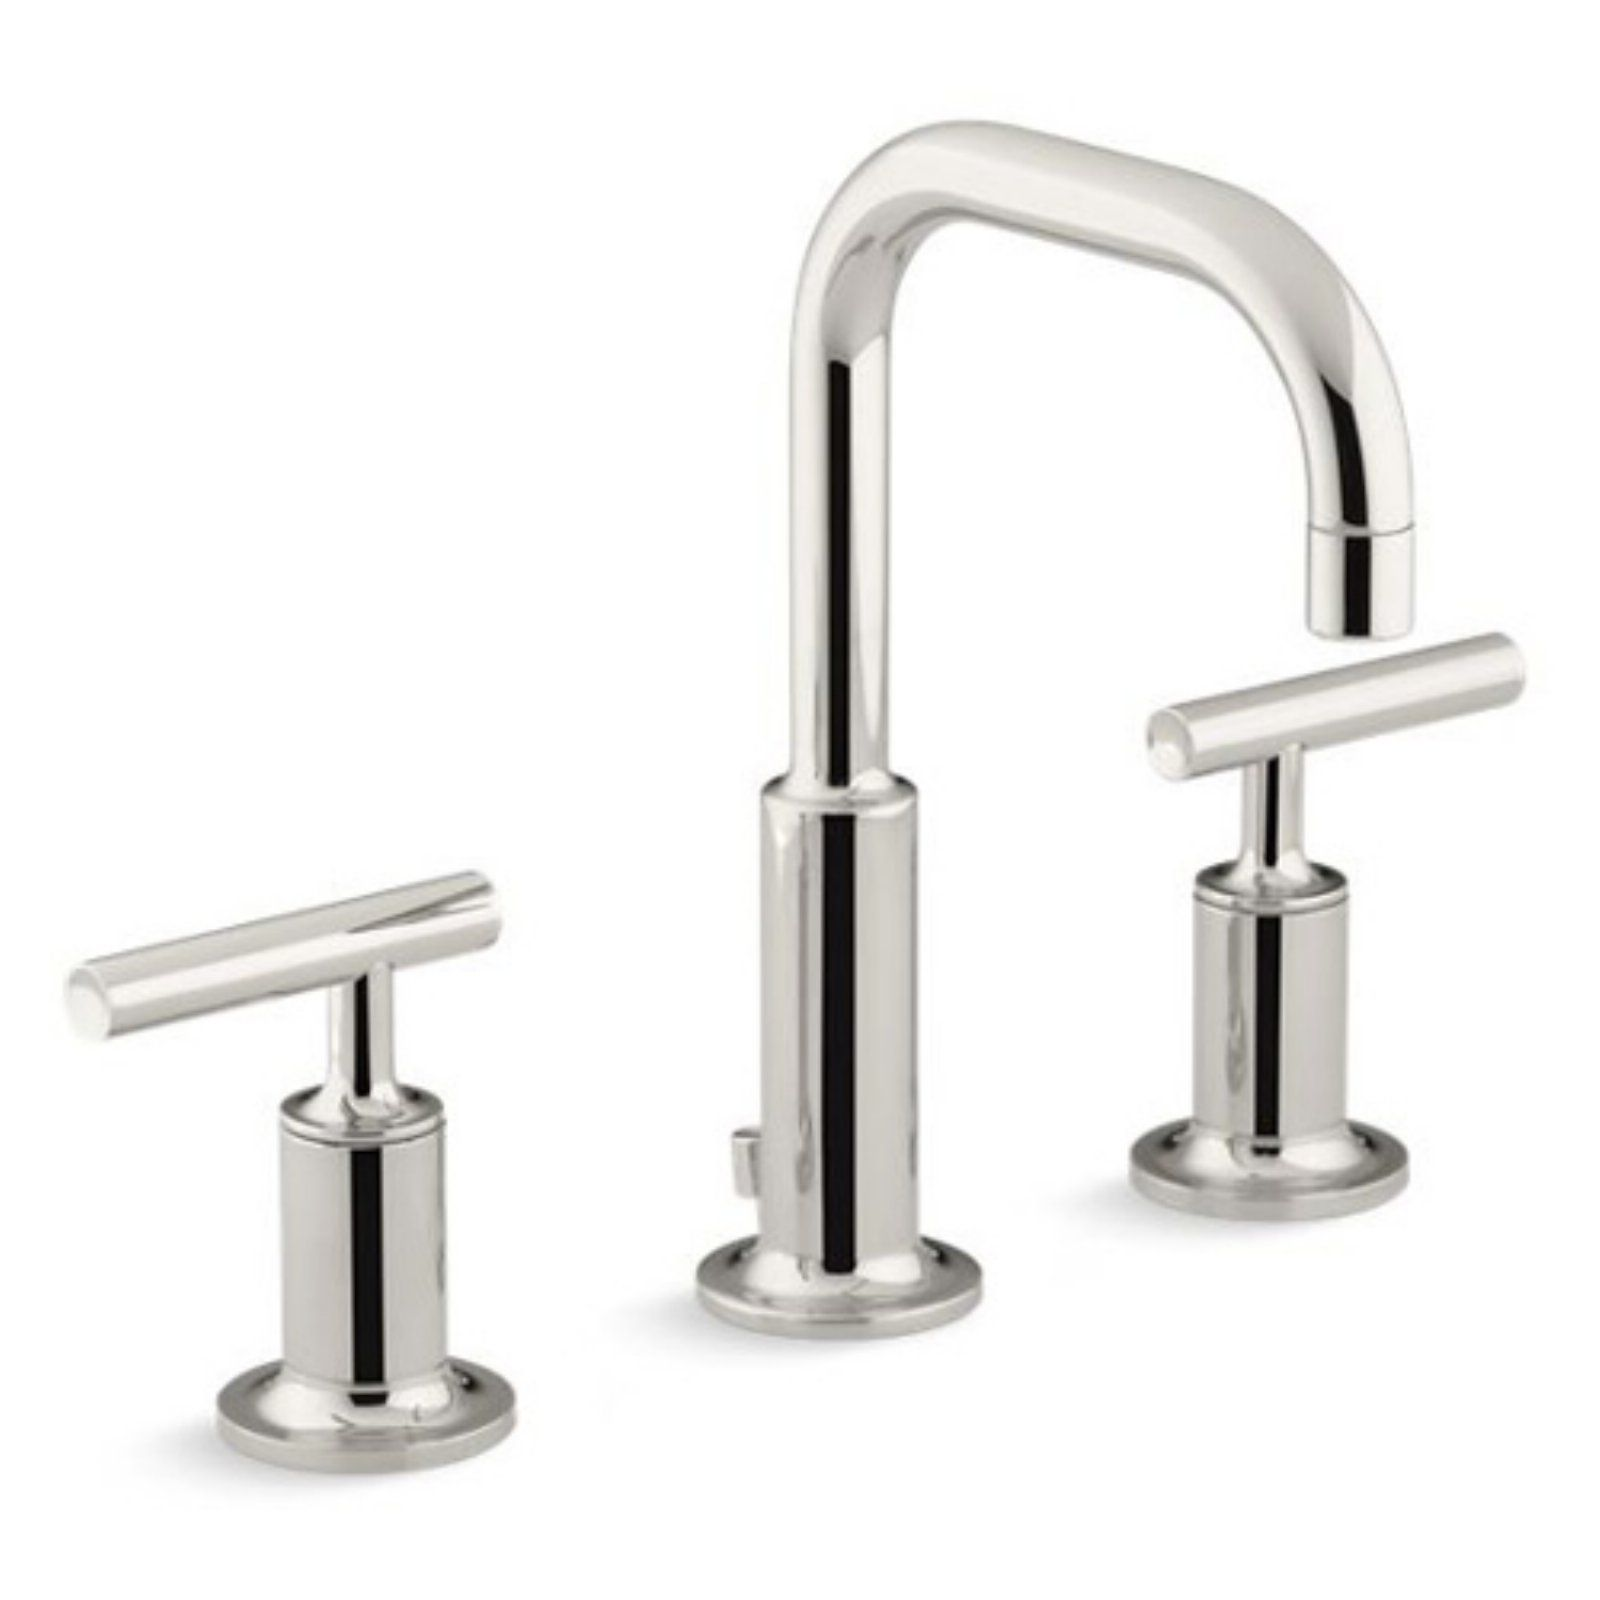 Kohler Purist Widespread Bathroom Sink Faucet With Low Lever